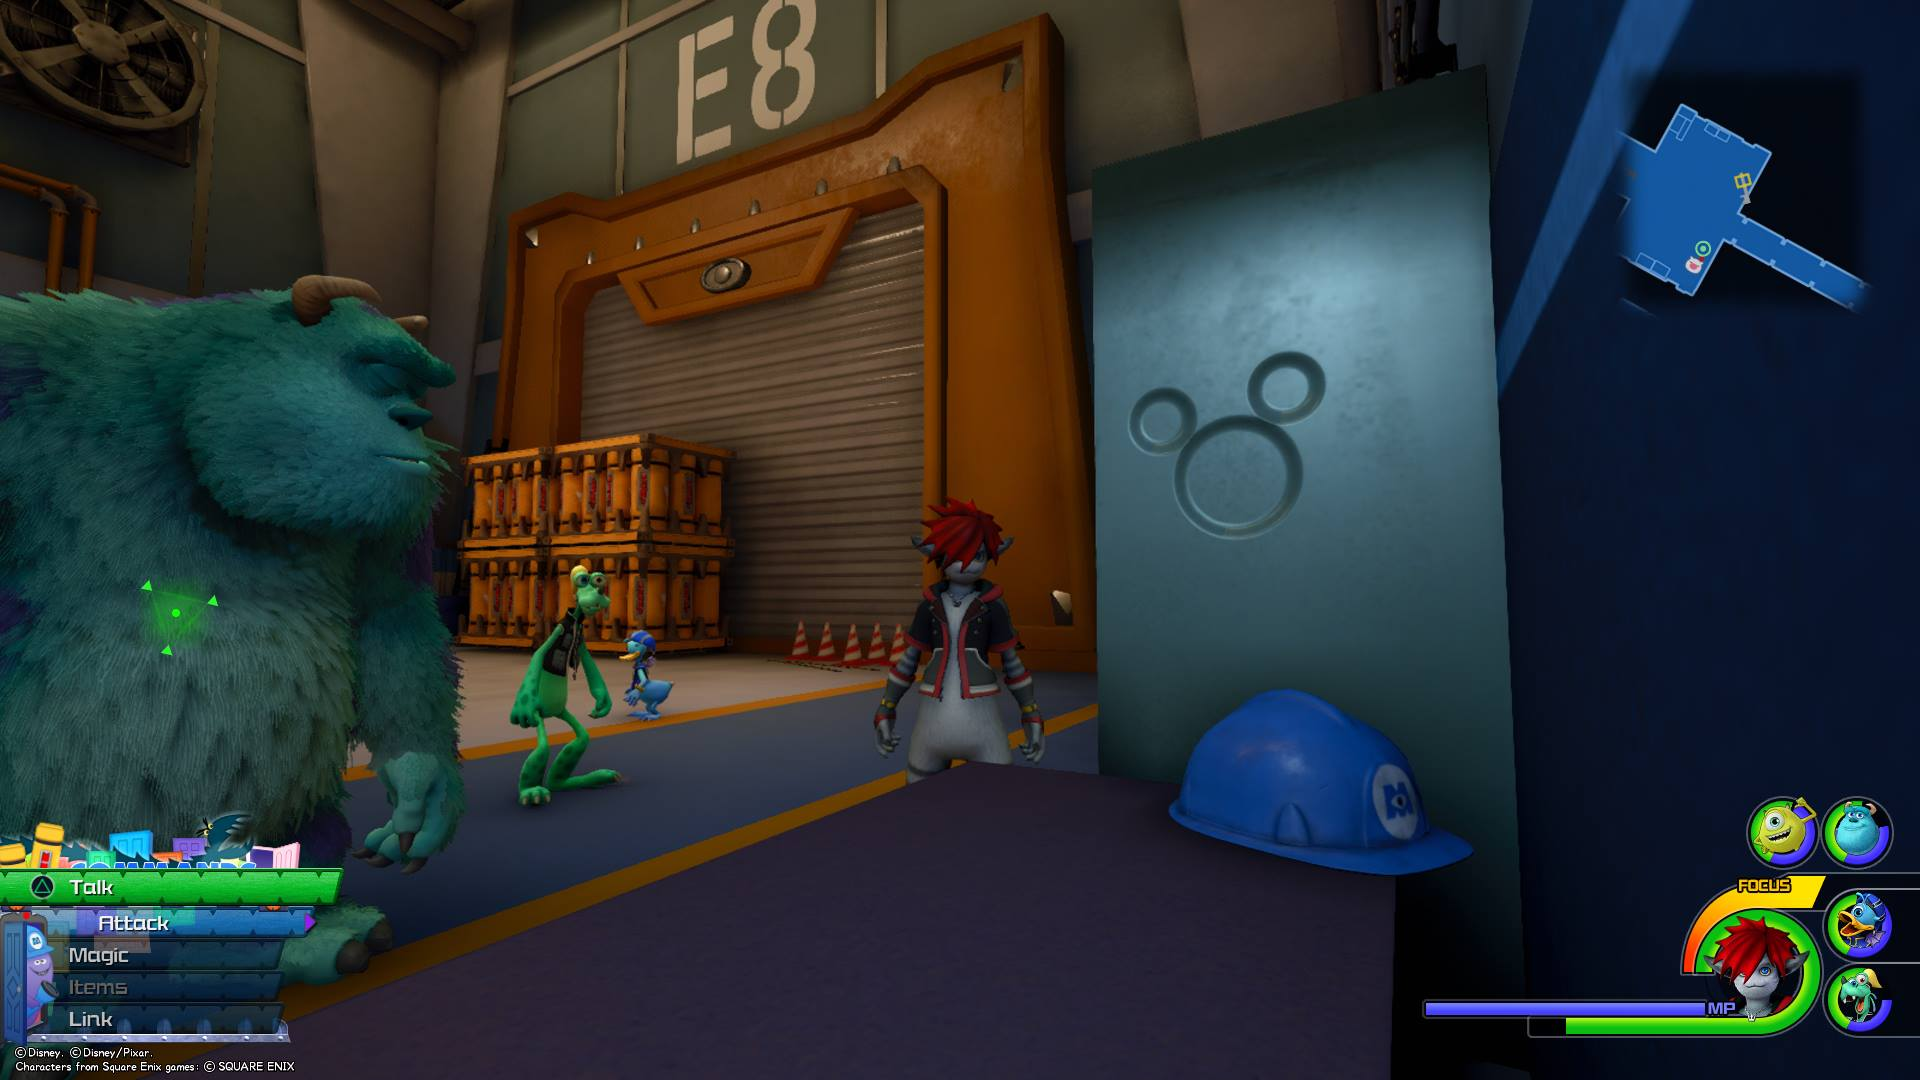 When you reach the Power Plant save room, look at the desk with the hard hat on it. On the side of a cabinet, you'll find the eighth Lucky Emblem.